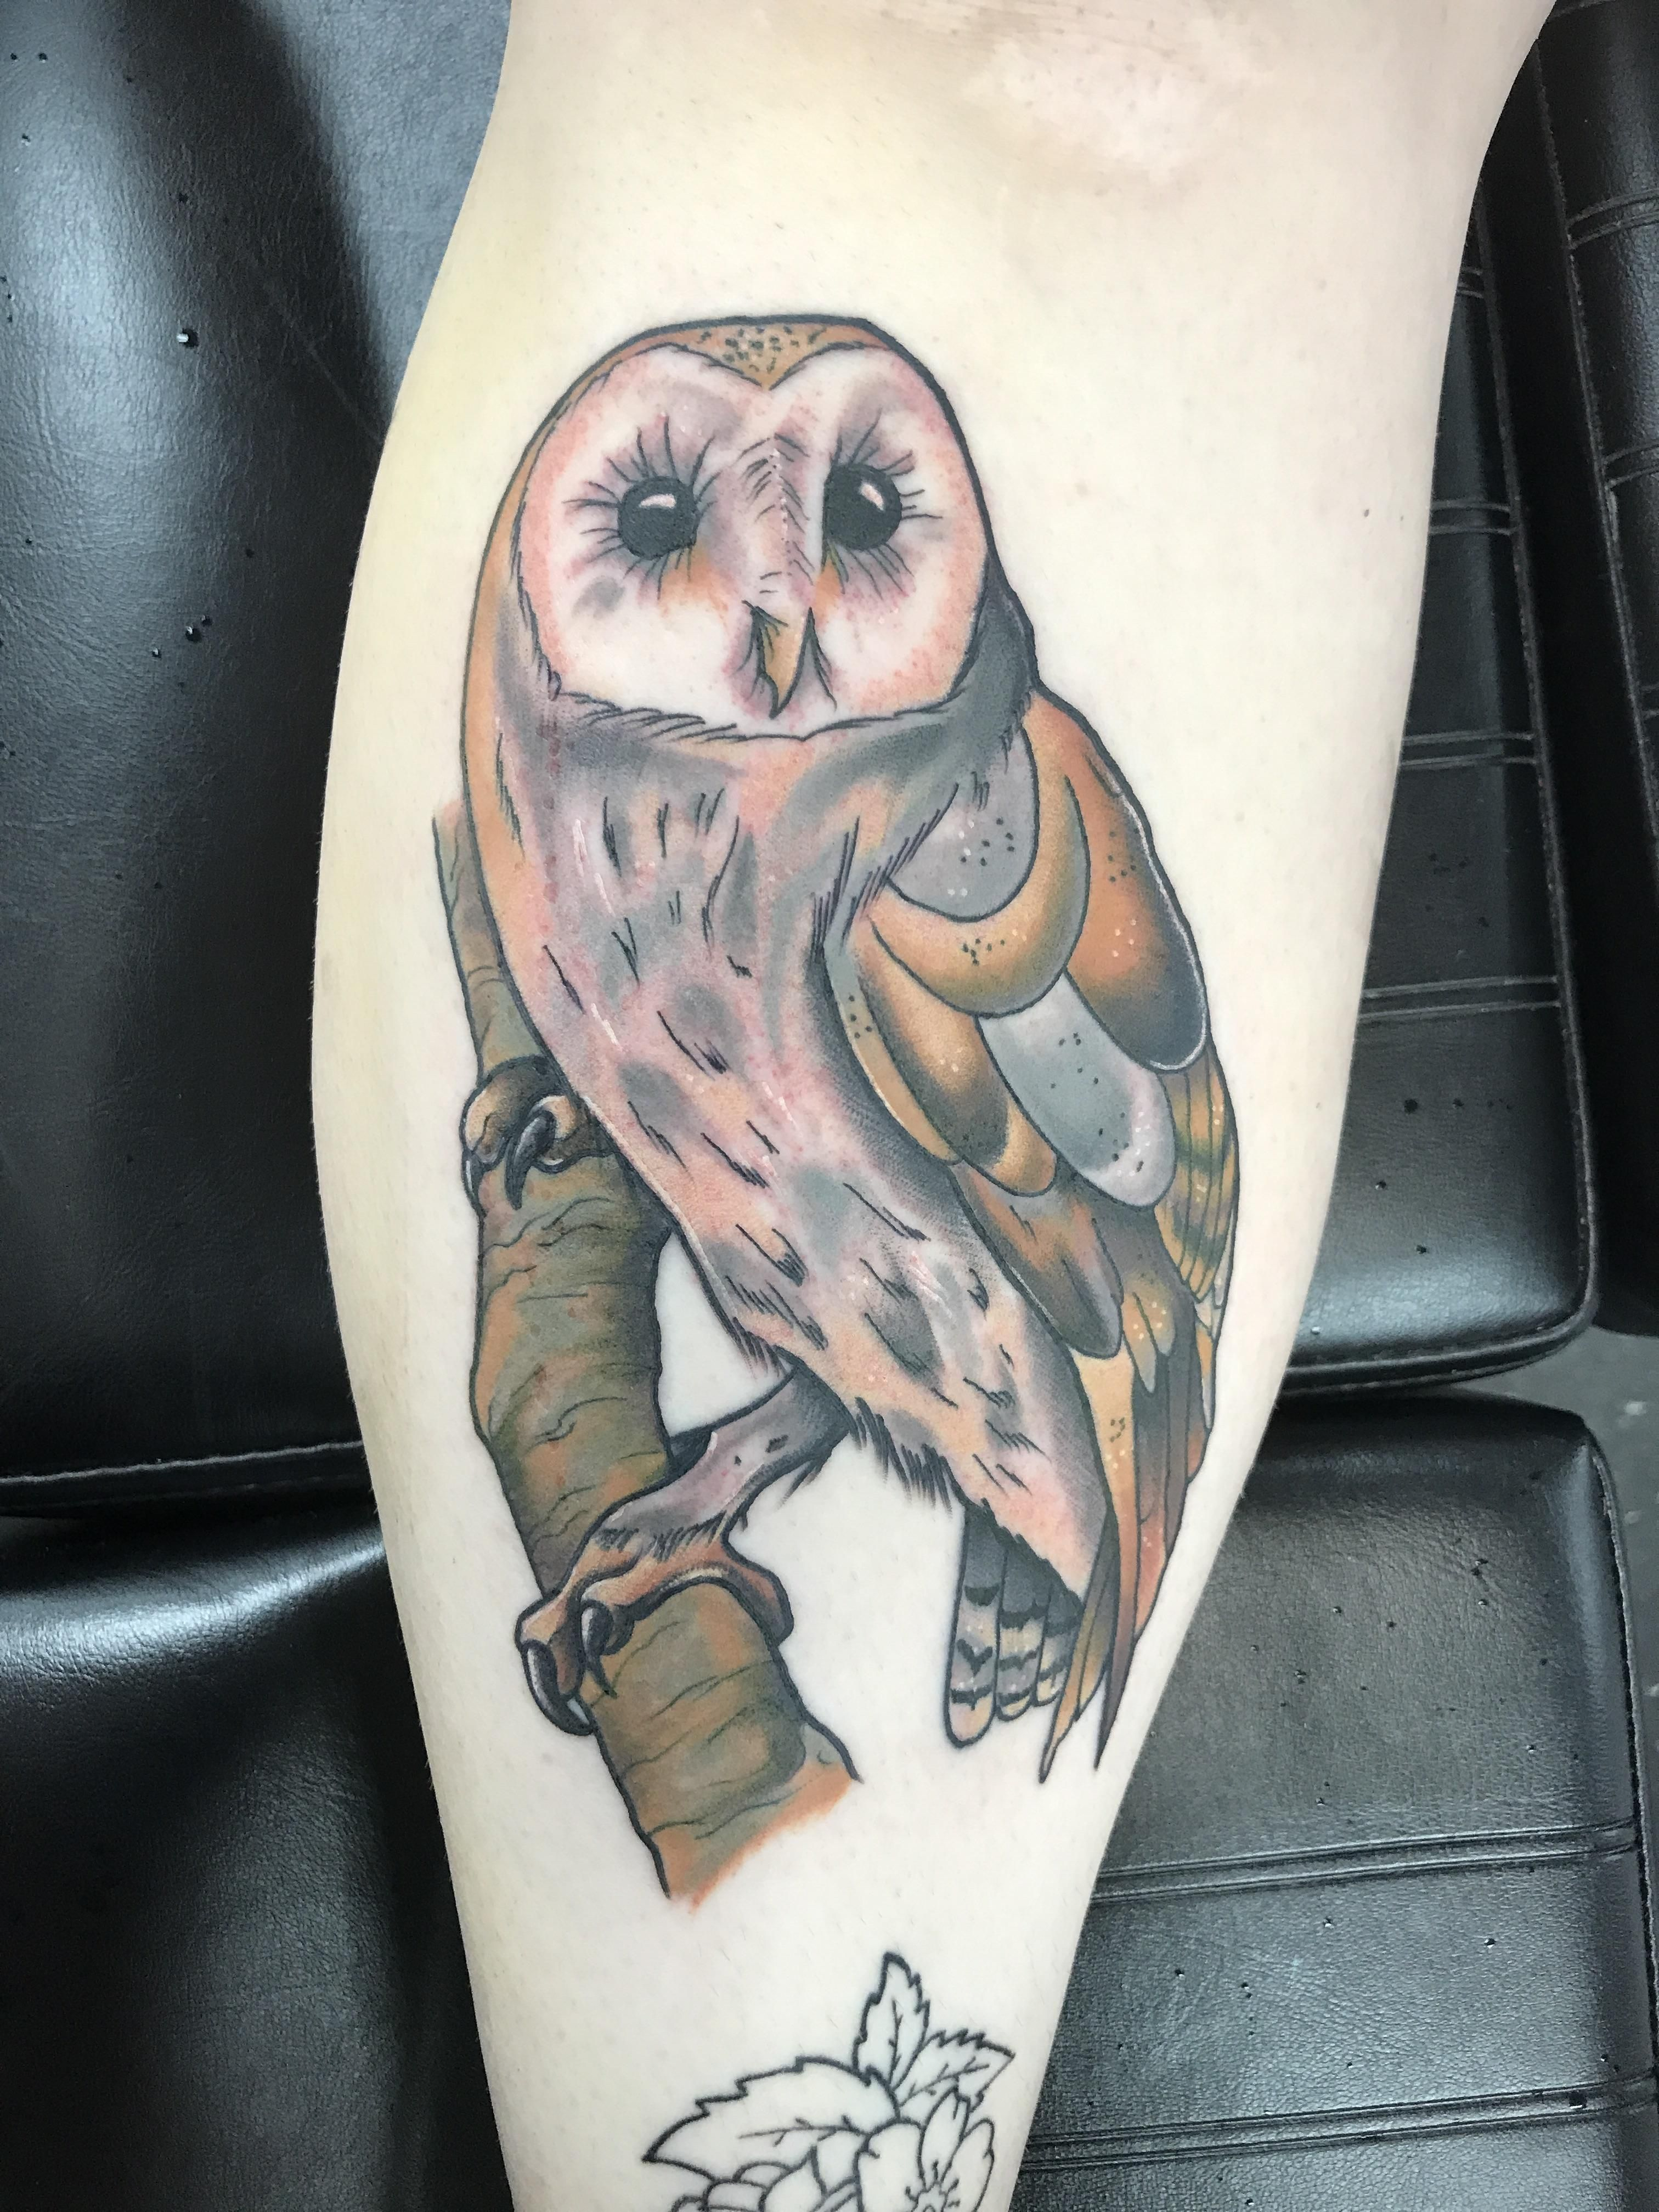 Barn Owl by Kyle Ghost at Drop of Ink Tattoo in